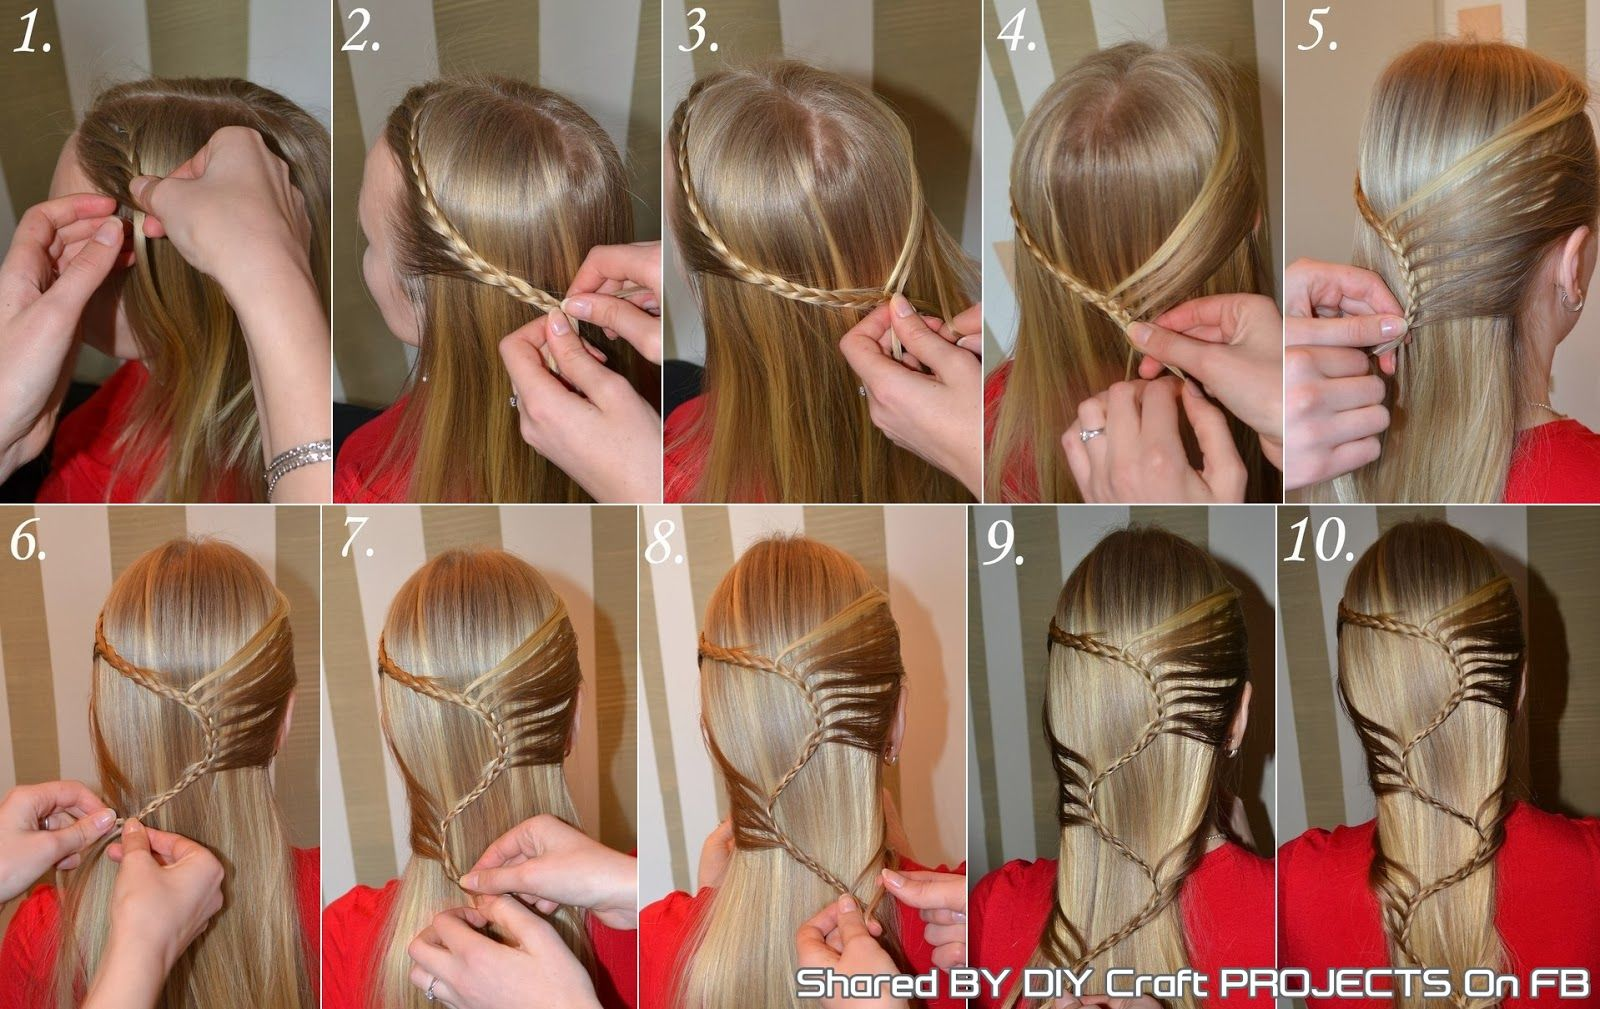 Incredible 1000 Images About Braids On Pinterest Unique Braided Hairstyles Short Hairstyles For Black Women Fulllsitofus